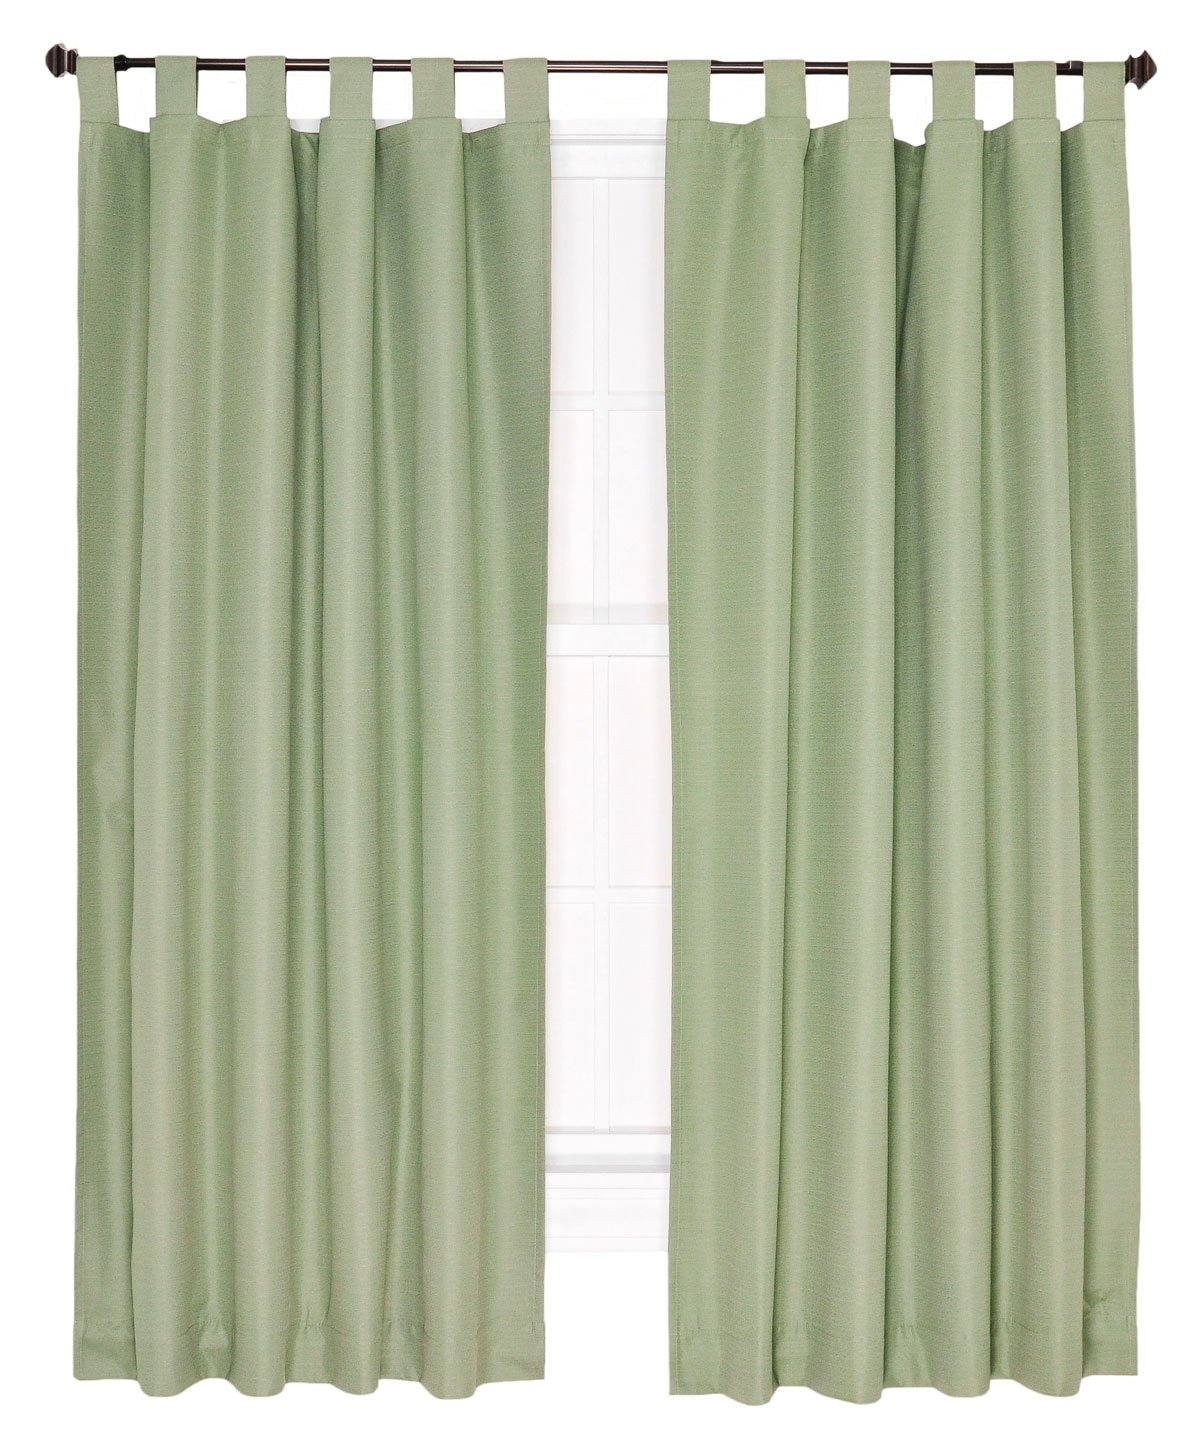 sage curtain tfile green trend best lime curtains living image stunning room of and ideas bedroom